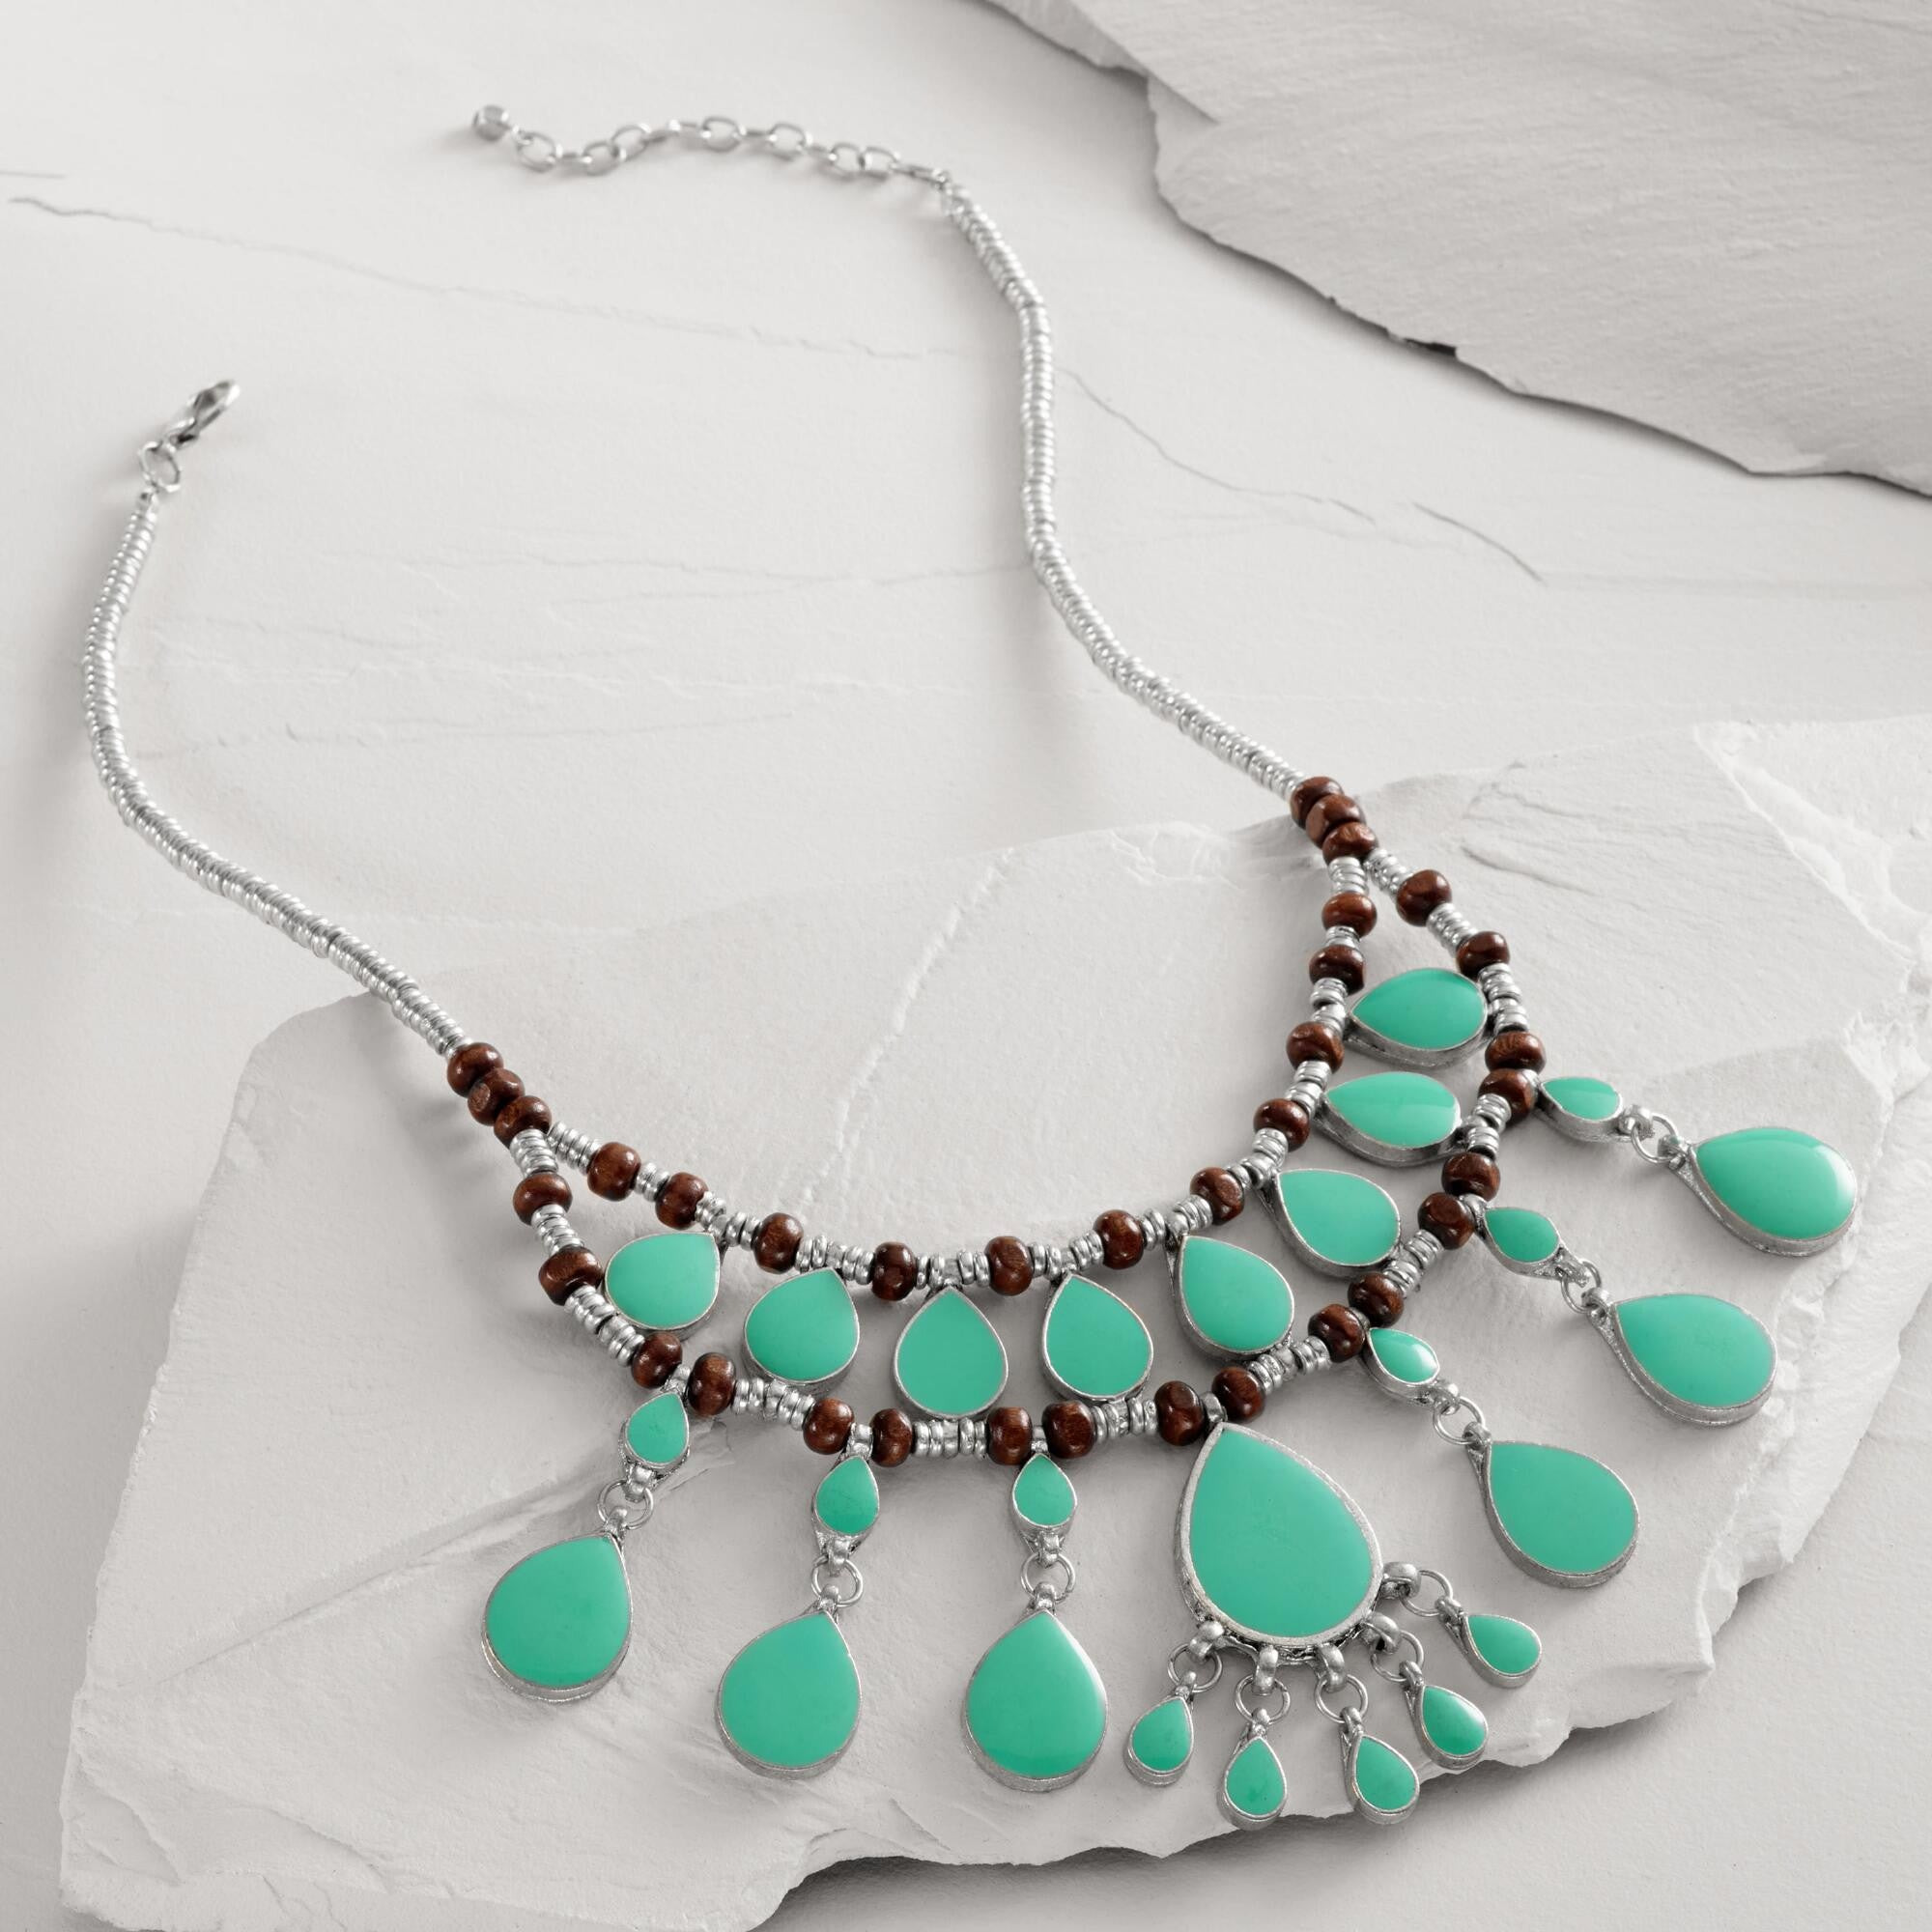 Turquoise Tile Chadelier Necklace